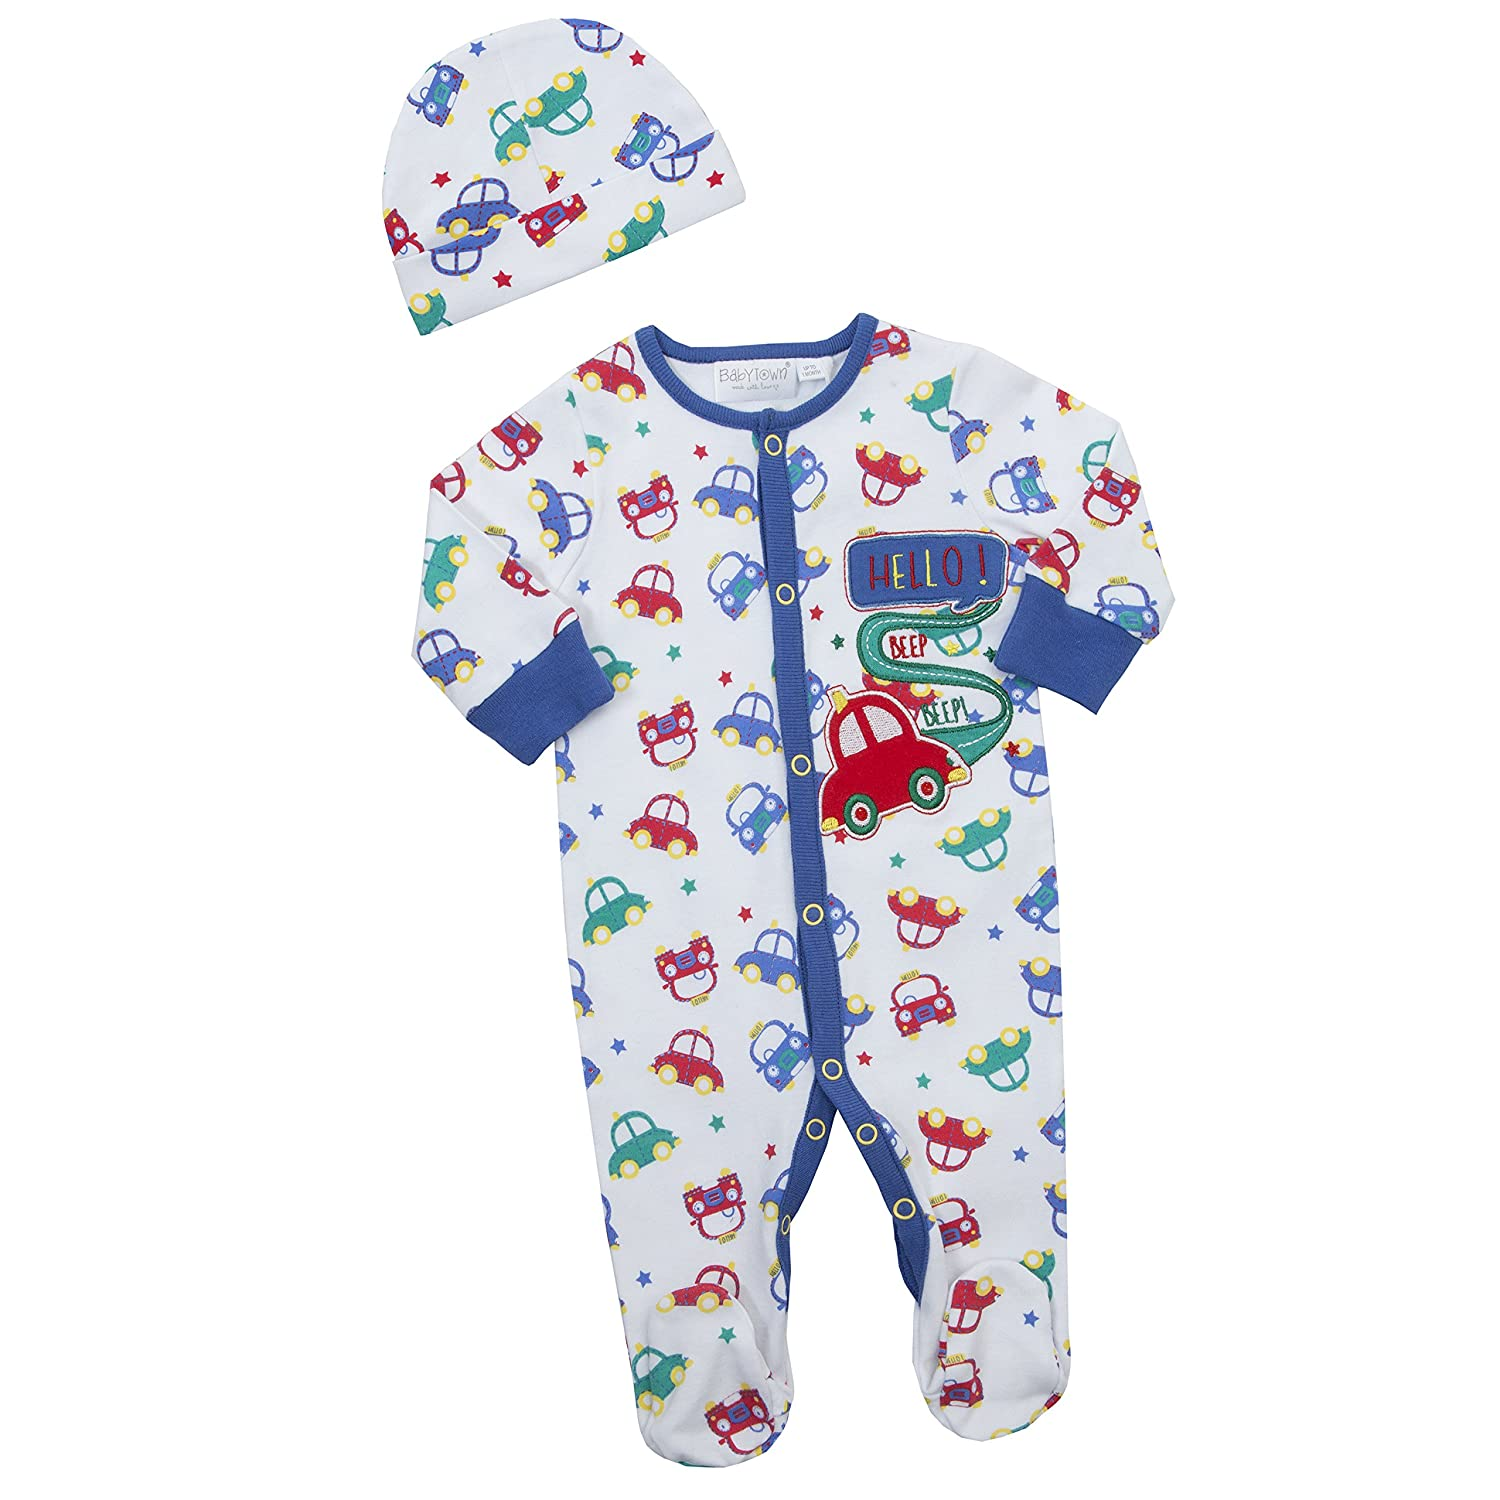 BABY TOWN Babytown Baby Boys Car Design Sleepsuit & Hat Set